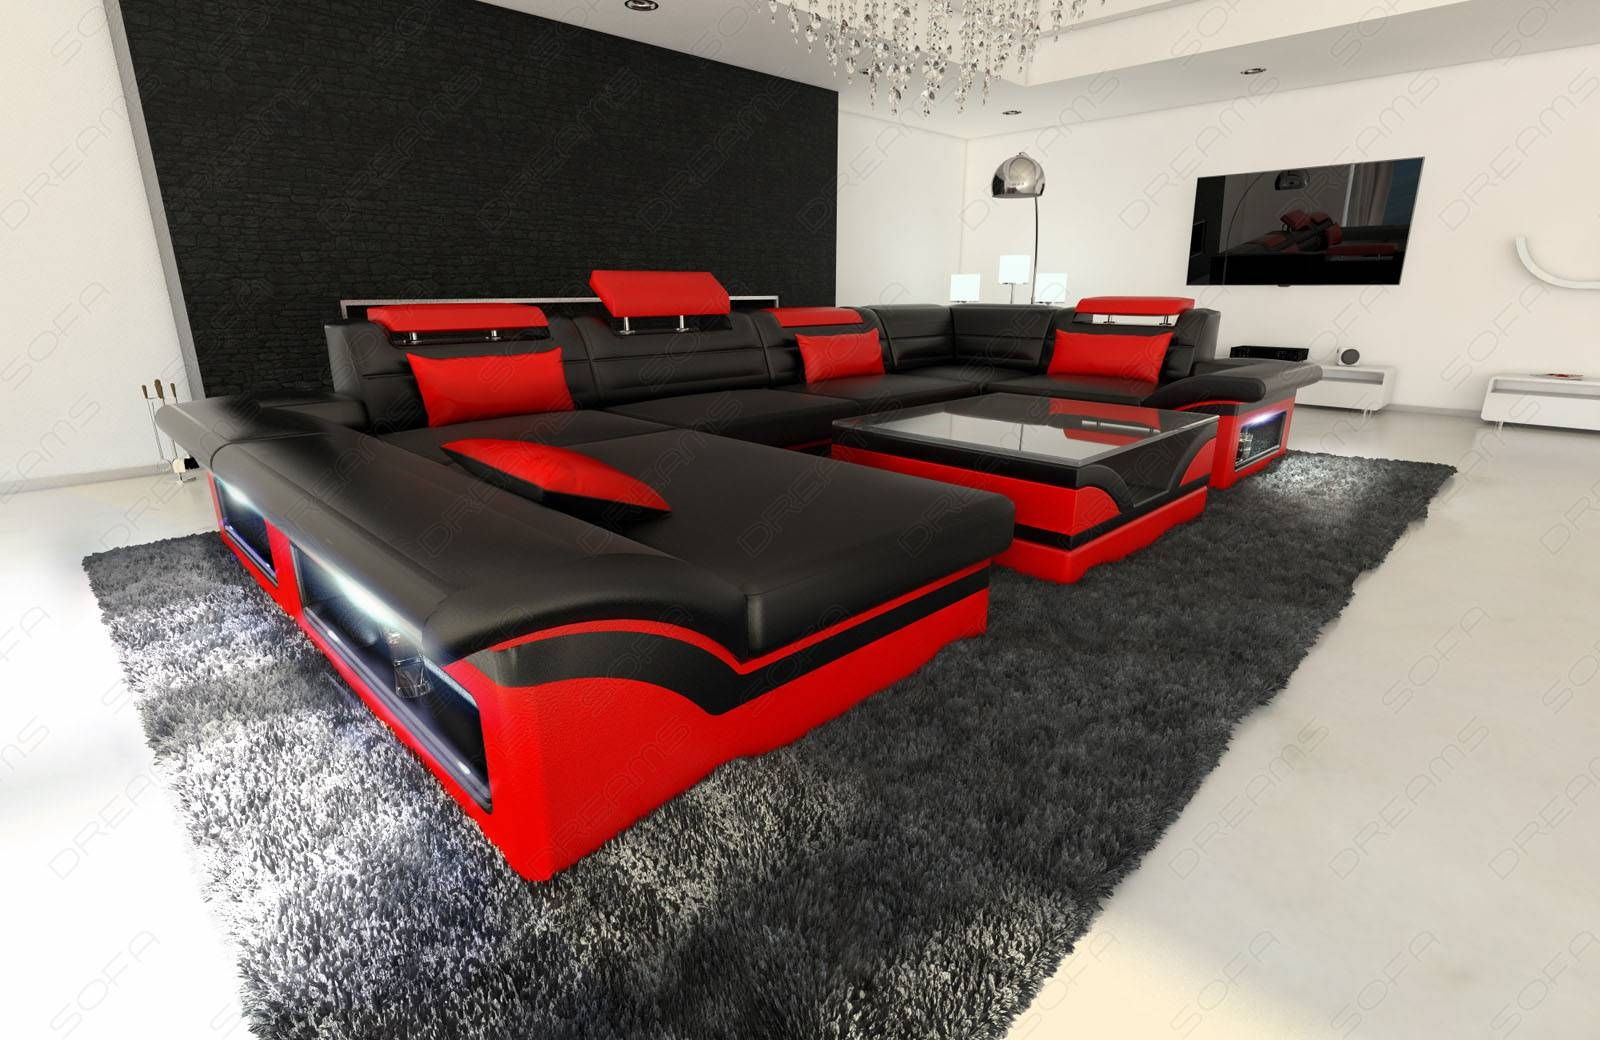 Big Leather Sofa Enzo With Led Lights Black Red | Ebay pertaining to Sofa Red And Black (Image 7 of 25)